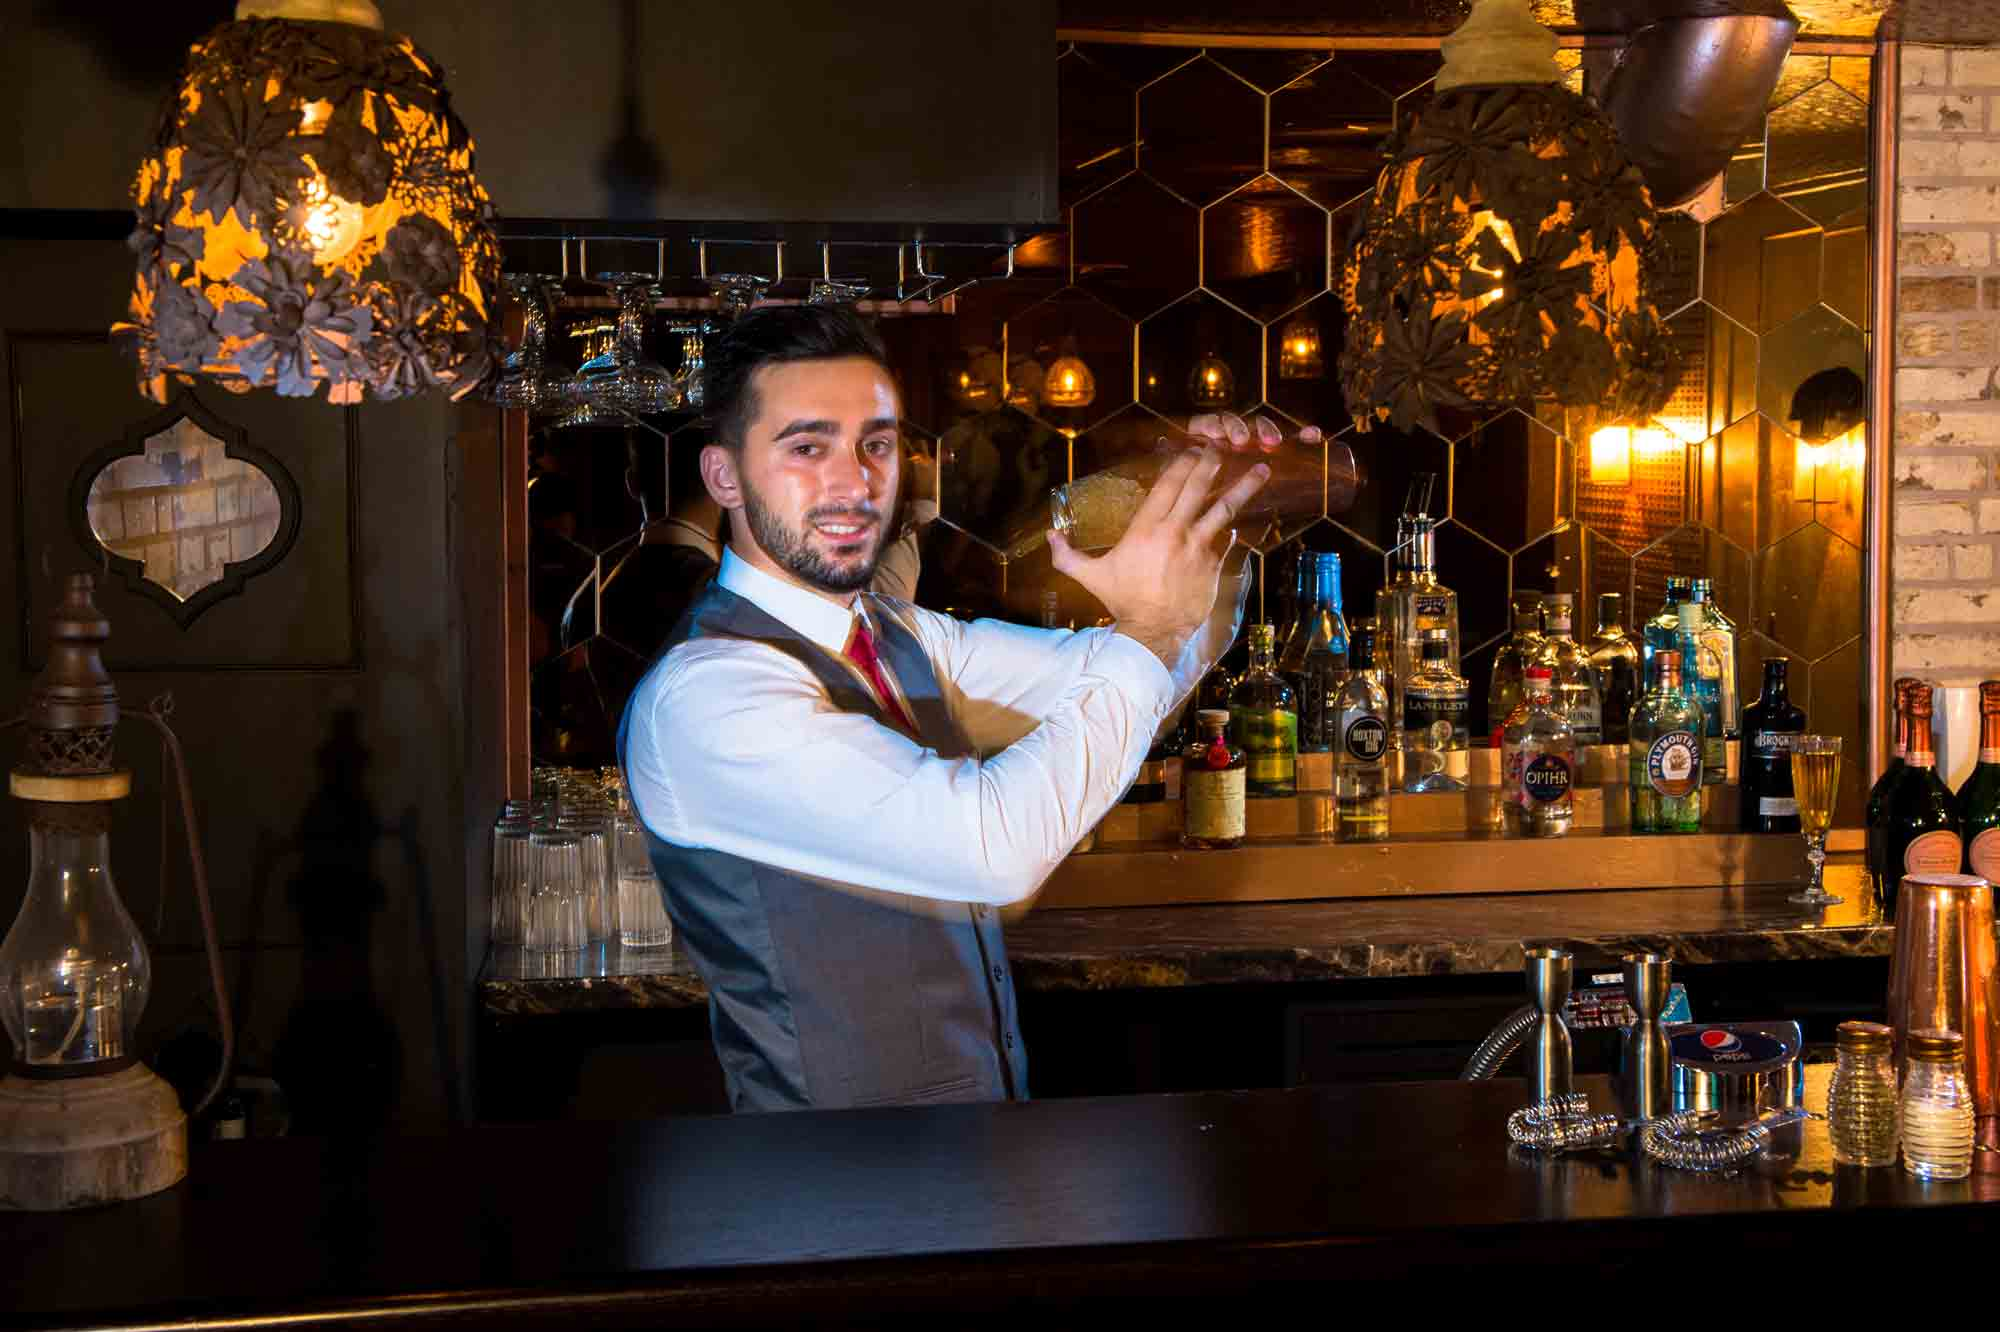 Well dressed barman mixing cocktails at a classy bar in front of a liquor display.